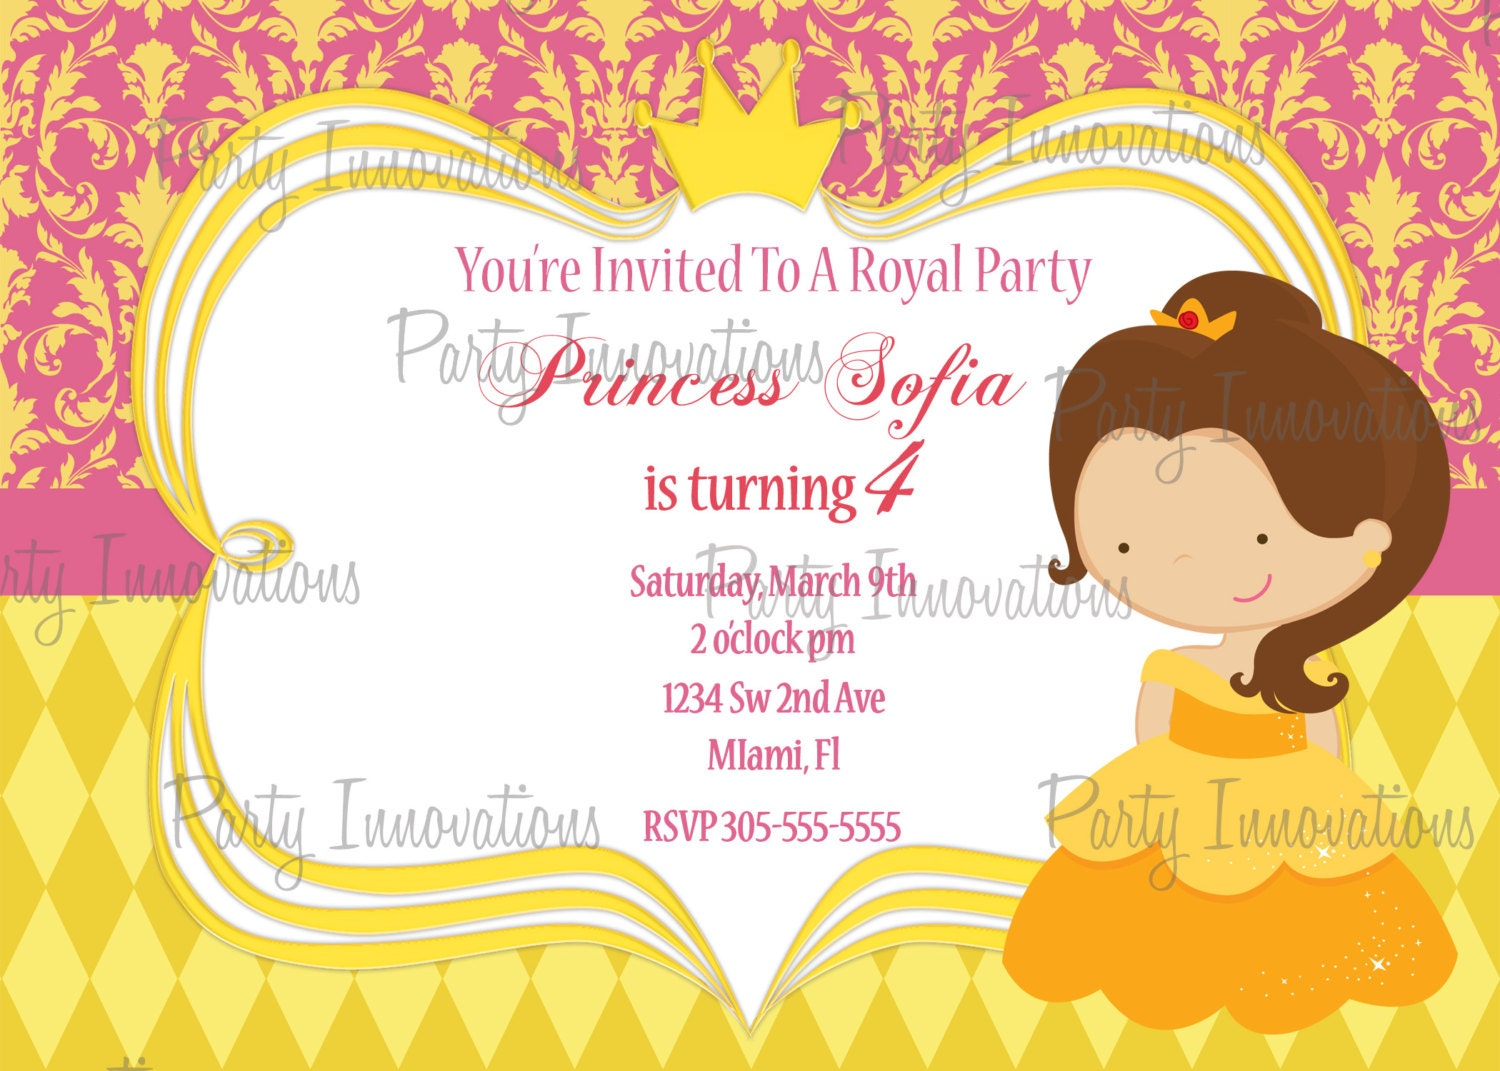 printable princess belle birthday party invitation plus printable princess belle birthday party invitation plus blank matching printable thank you card 128270zoom